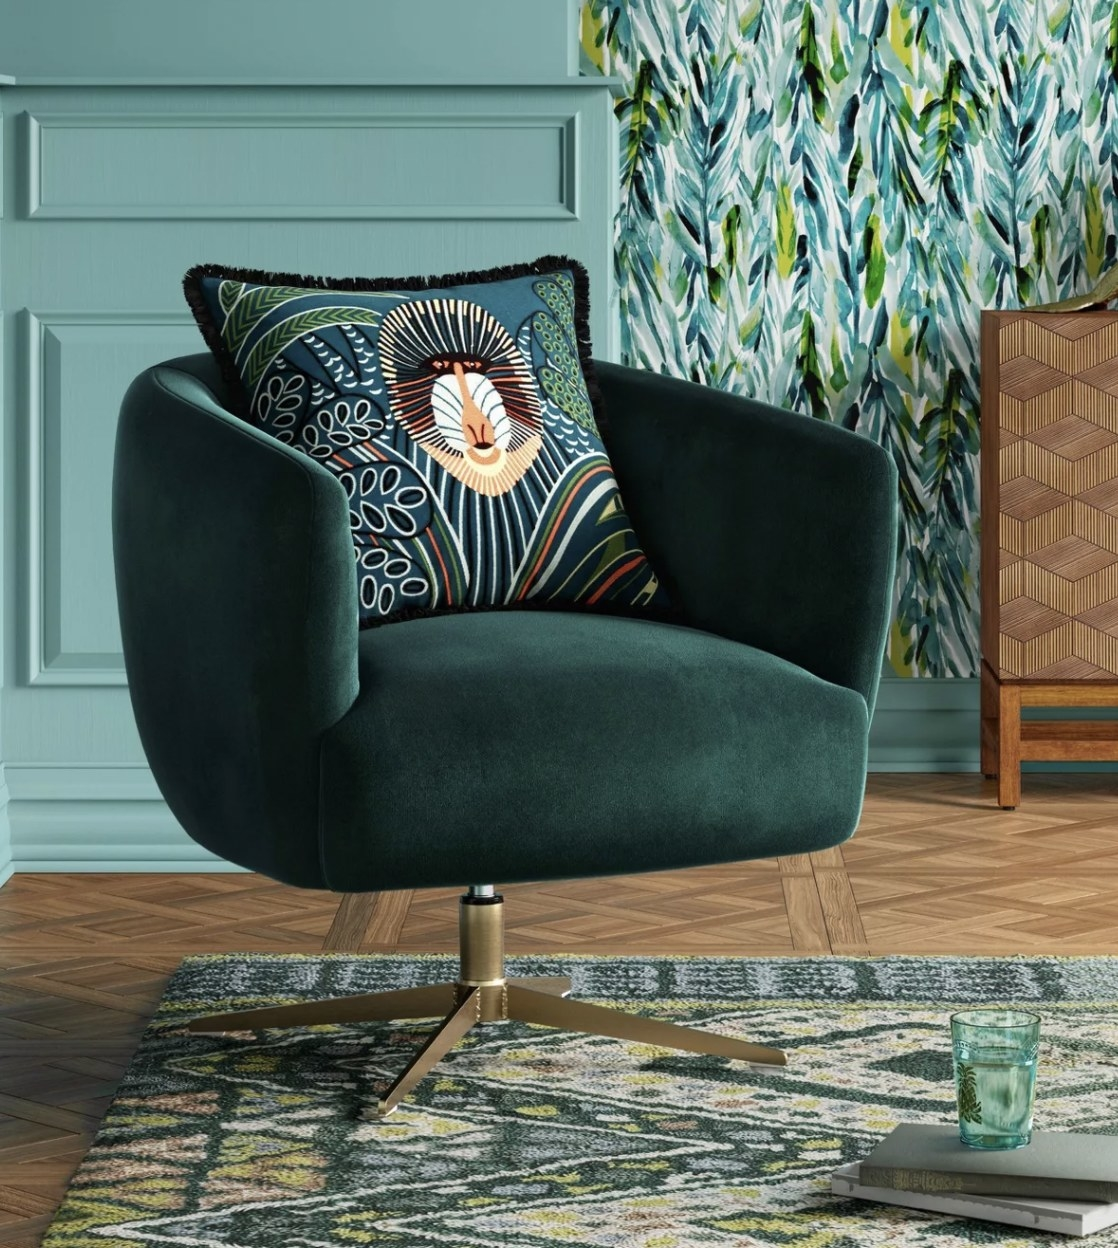 a green velvet armchair that swivels, with brass legs. The chair is sitting in a green room